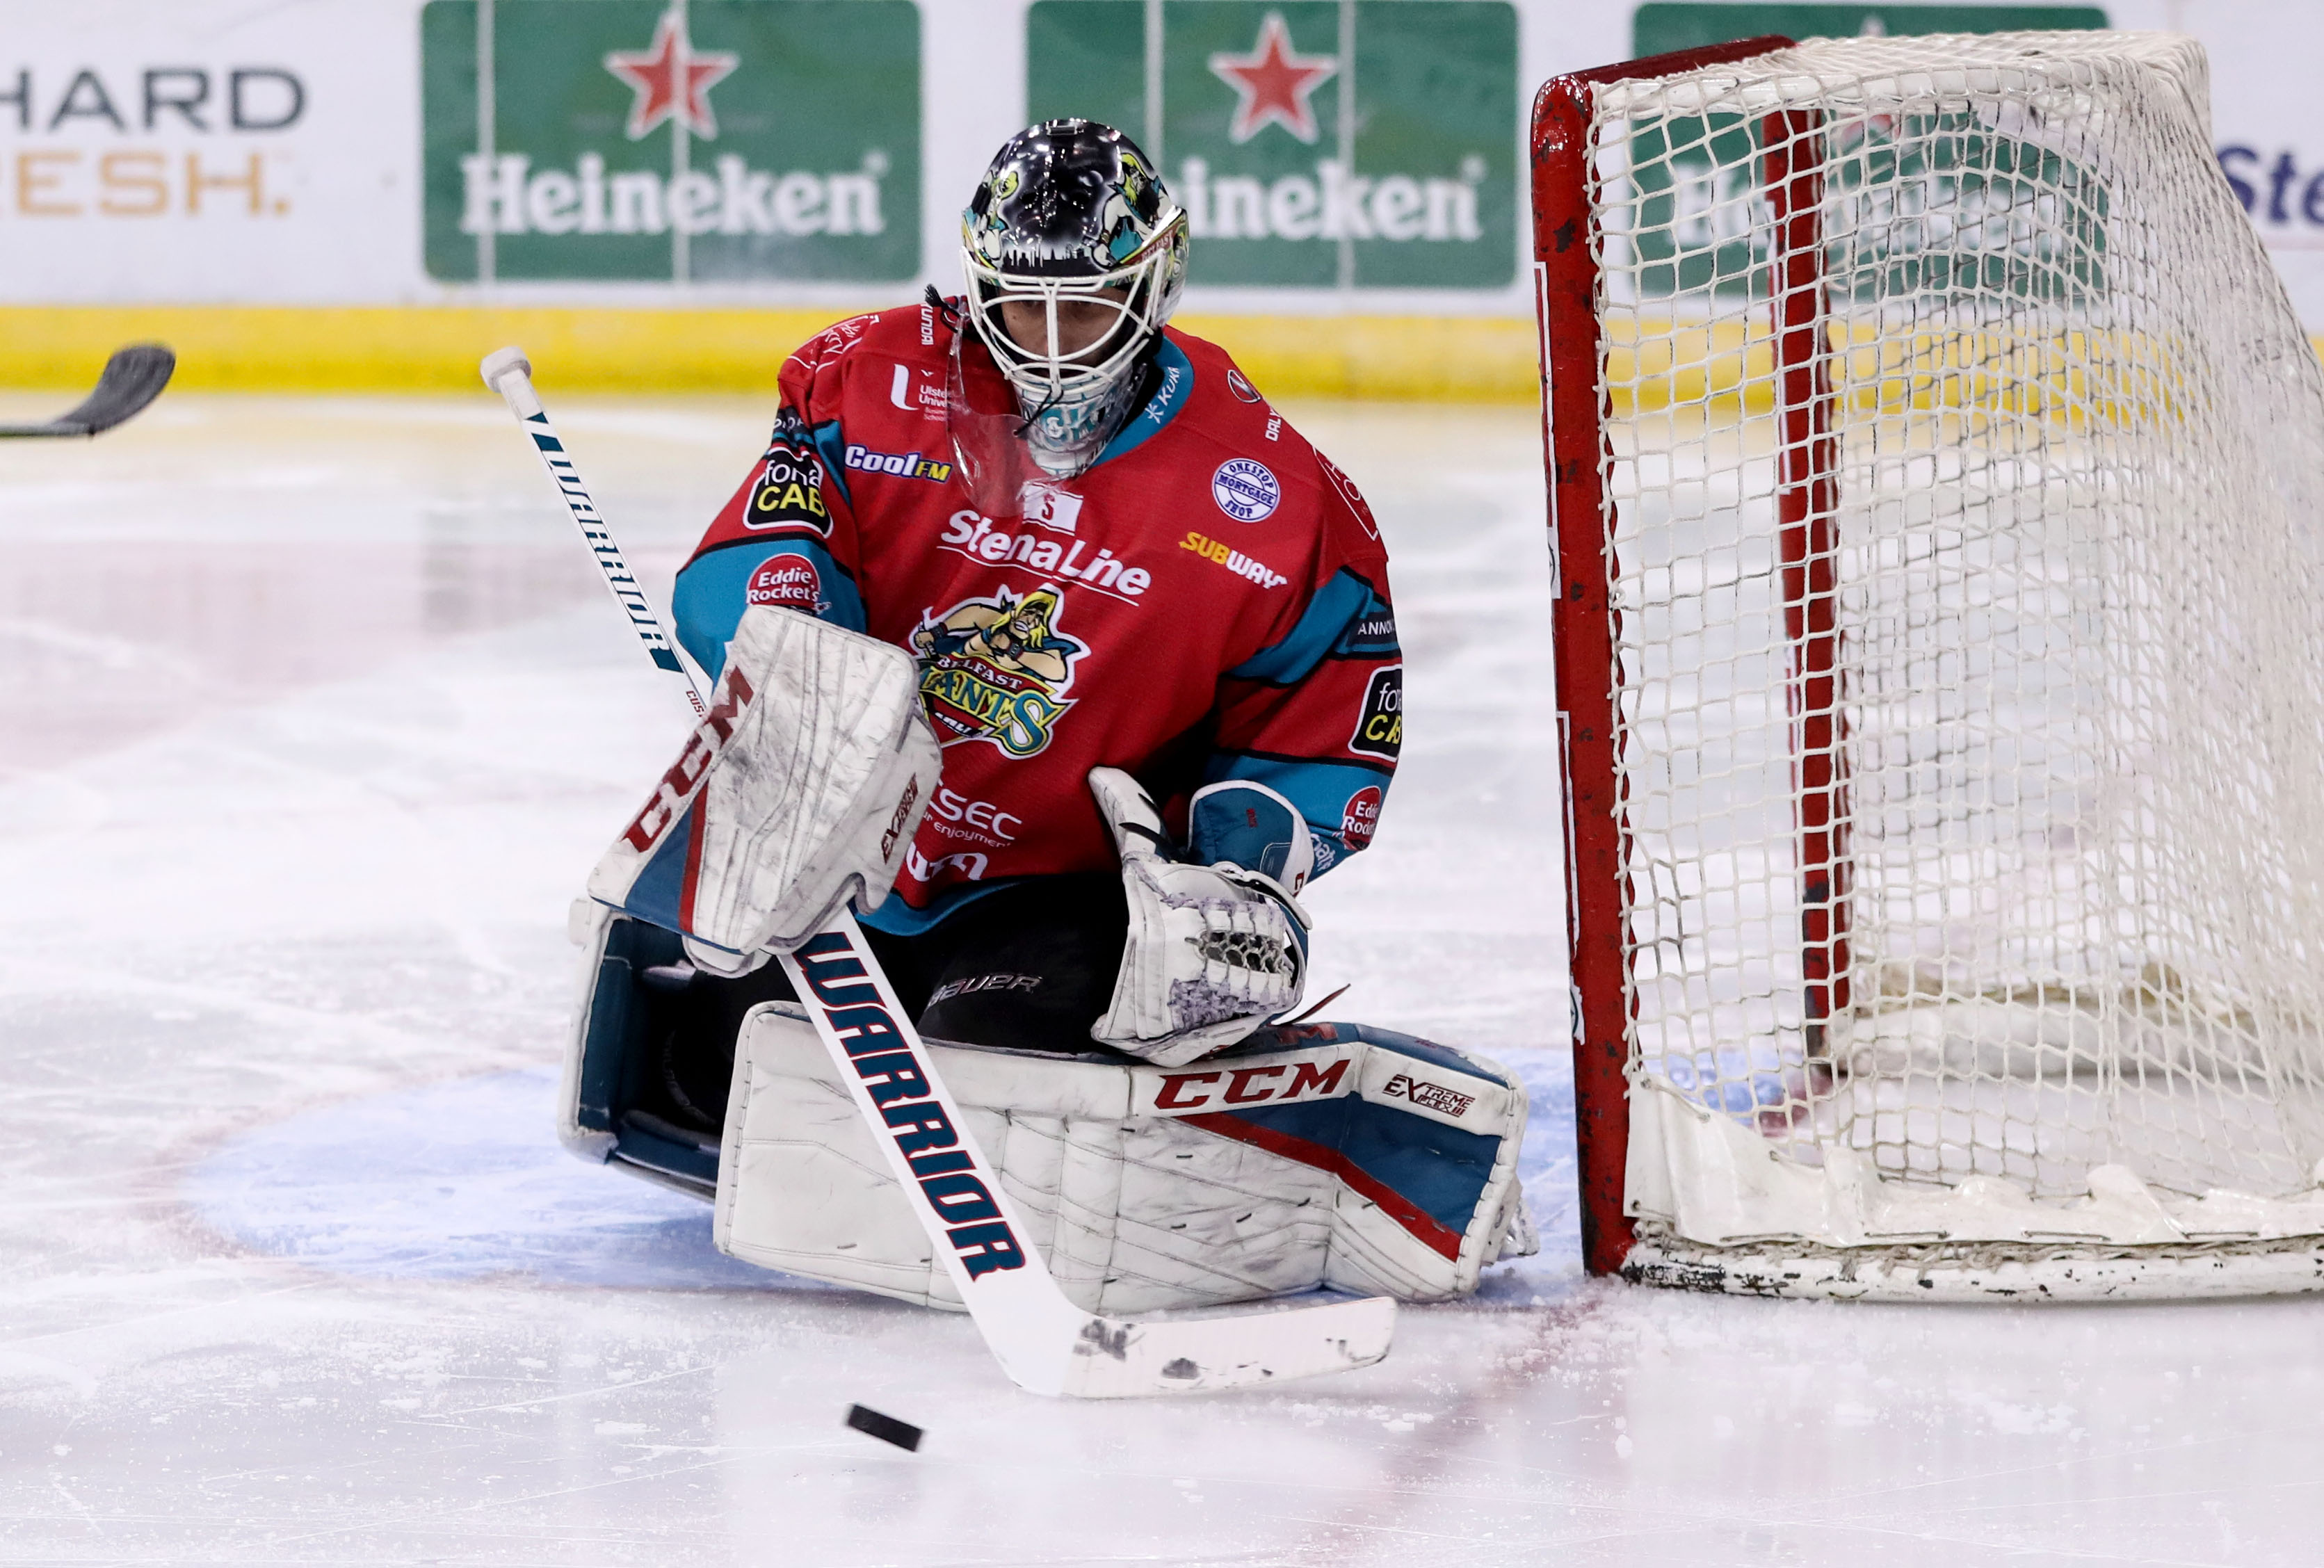 Belfast Giants v Dundee Stars - Challenge Cup Quarter Final 2nd leg